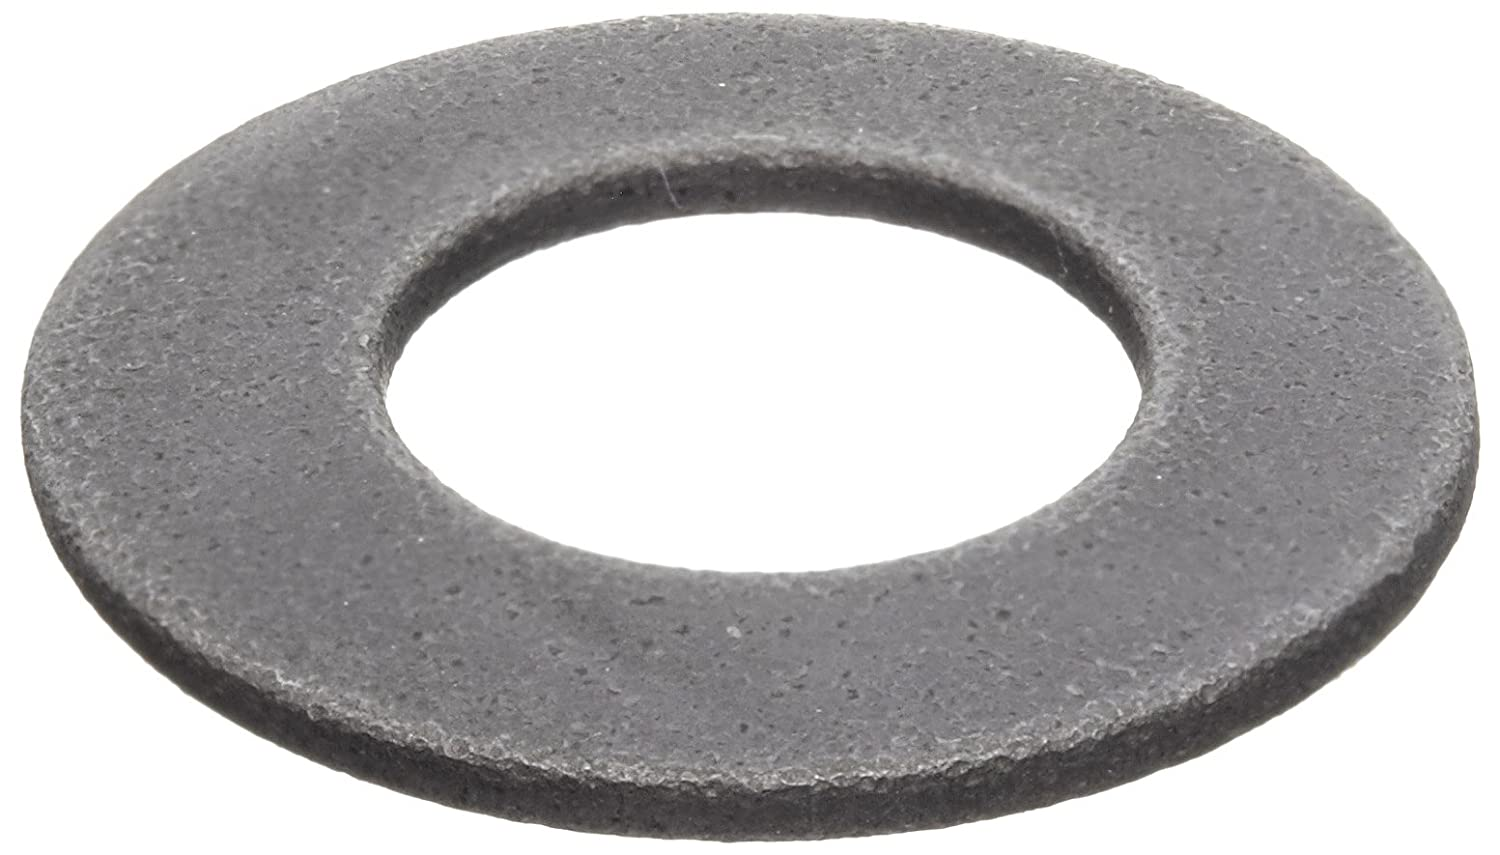 Metric Carbon Steel Belleville Spring Washers 8.2 millimeters Inner Diameter 23 millimeters Outside Diameter 1.55 millimeters Free Height 0.99 millimeters Compressed Height 718 newtons Max. Load Pack of 10